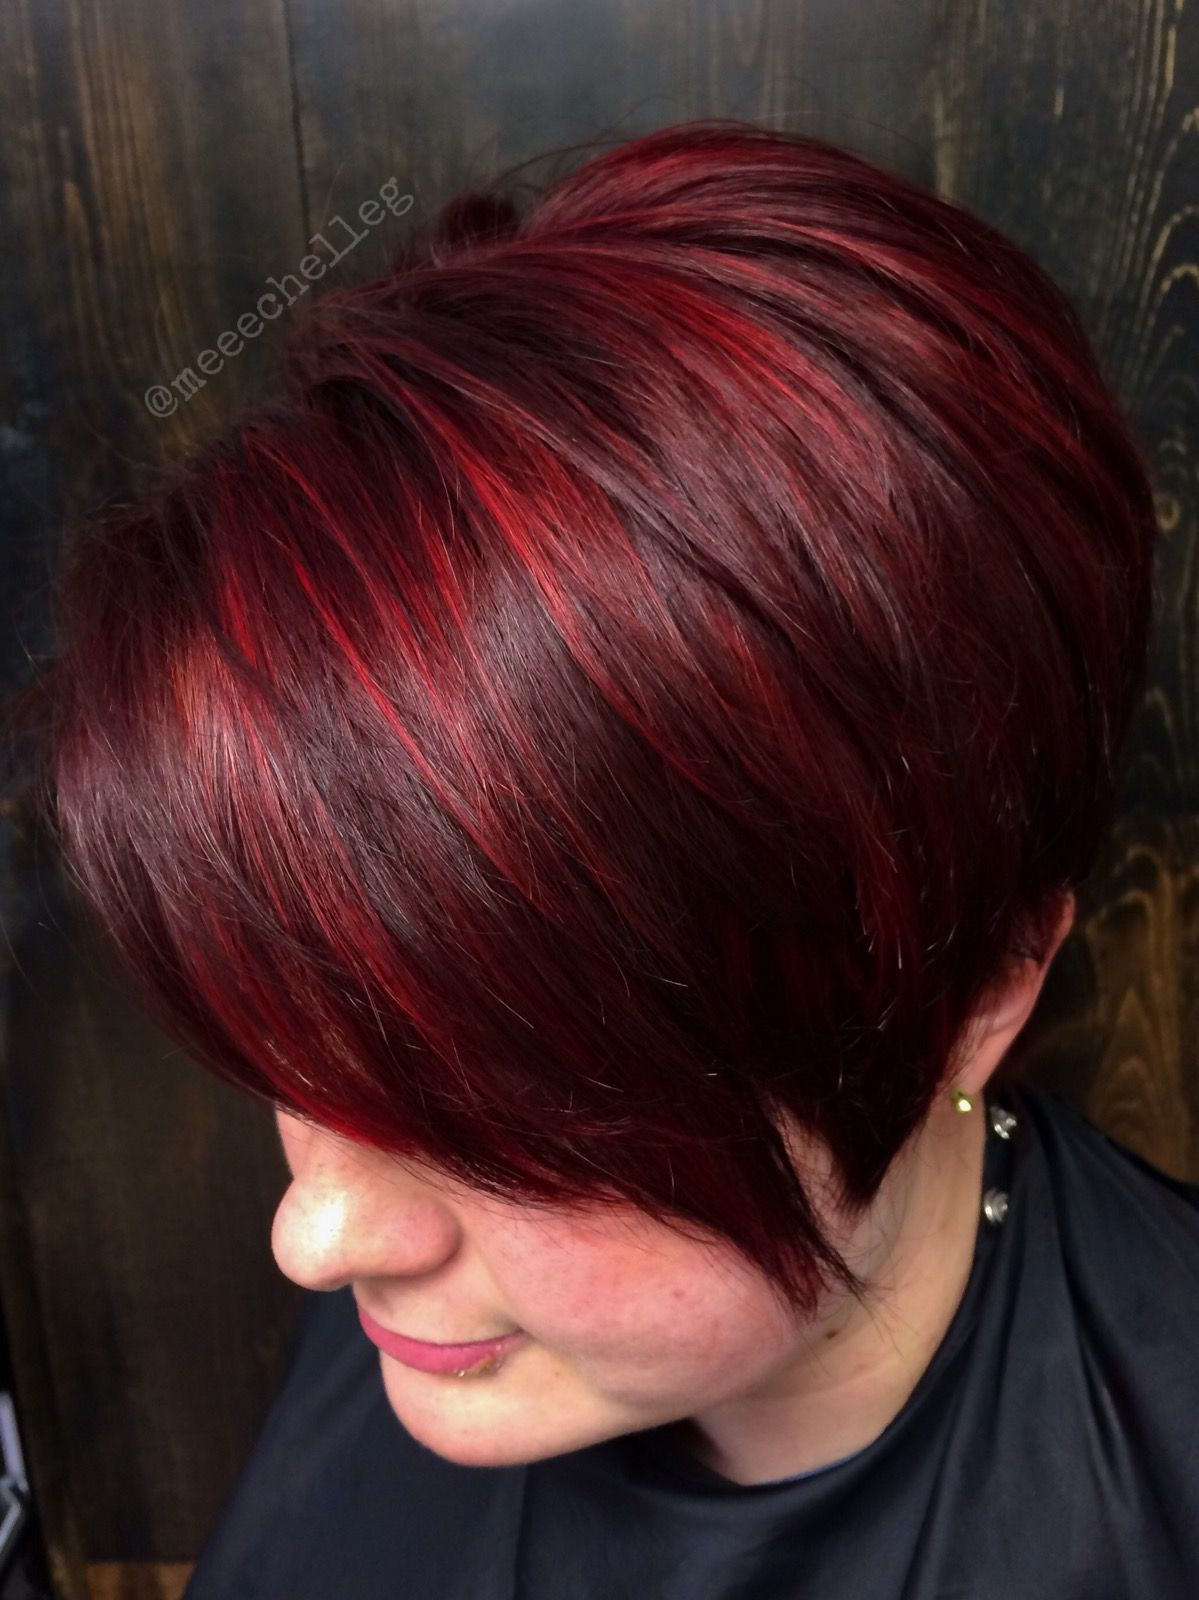 Bright red red highlights stand out red candy apple red short